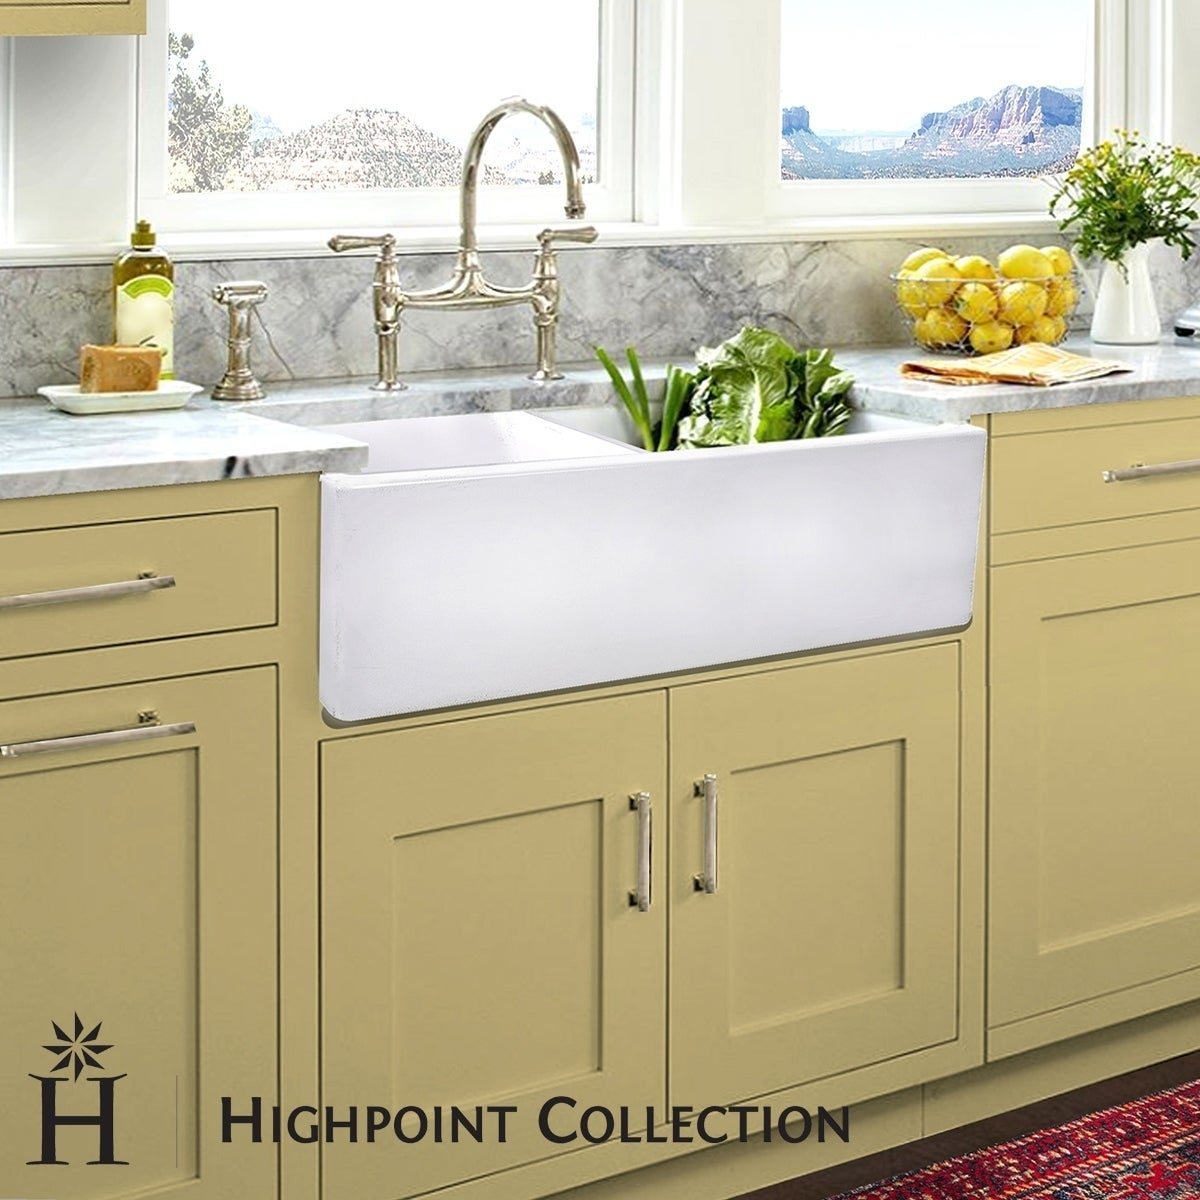 Highpoint Collection Italian Fireclay Double Bowl Farmhouse Sink - 33\